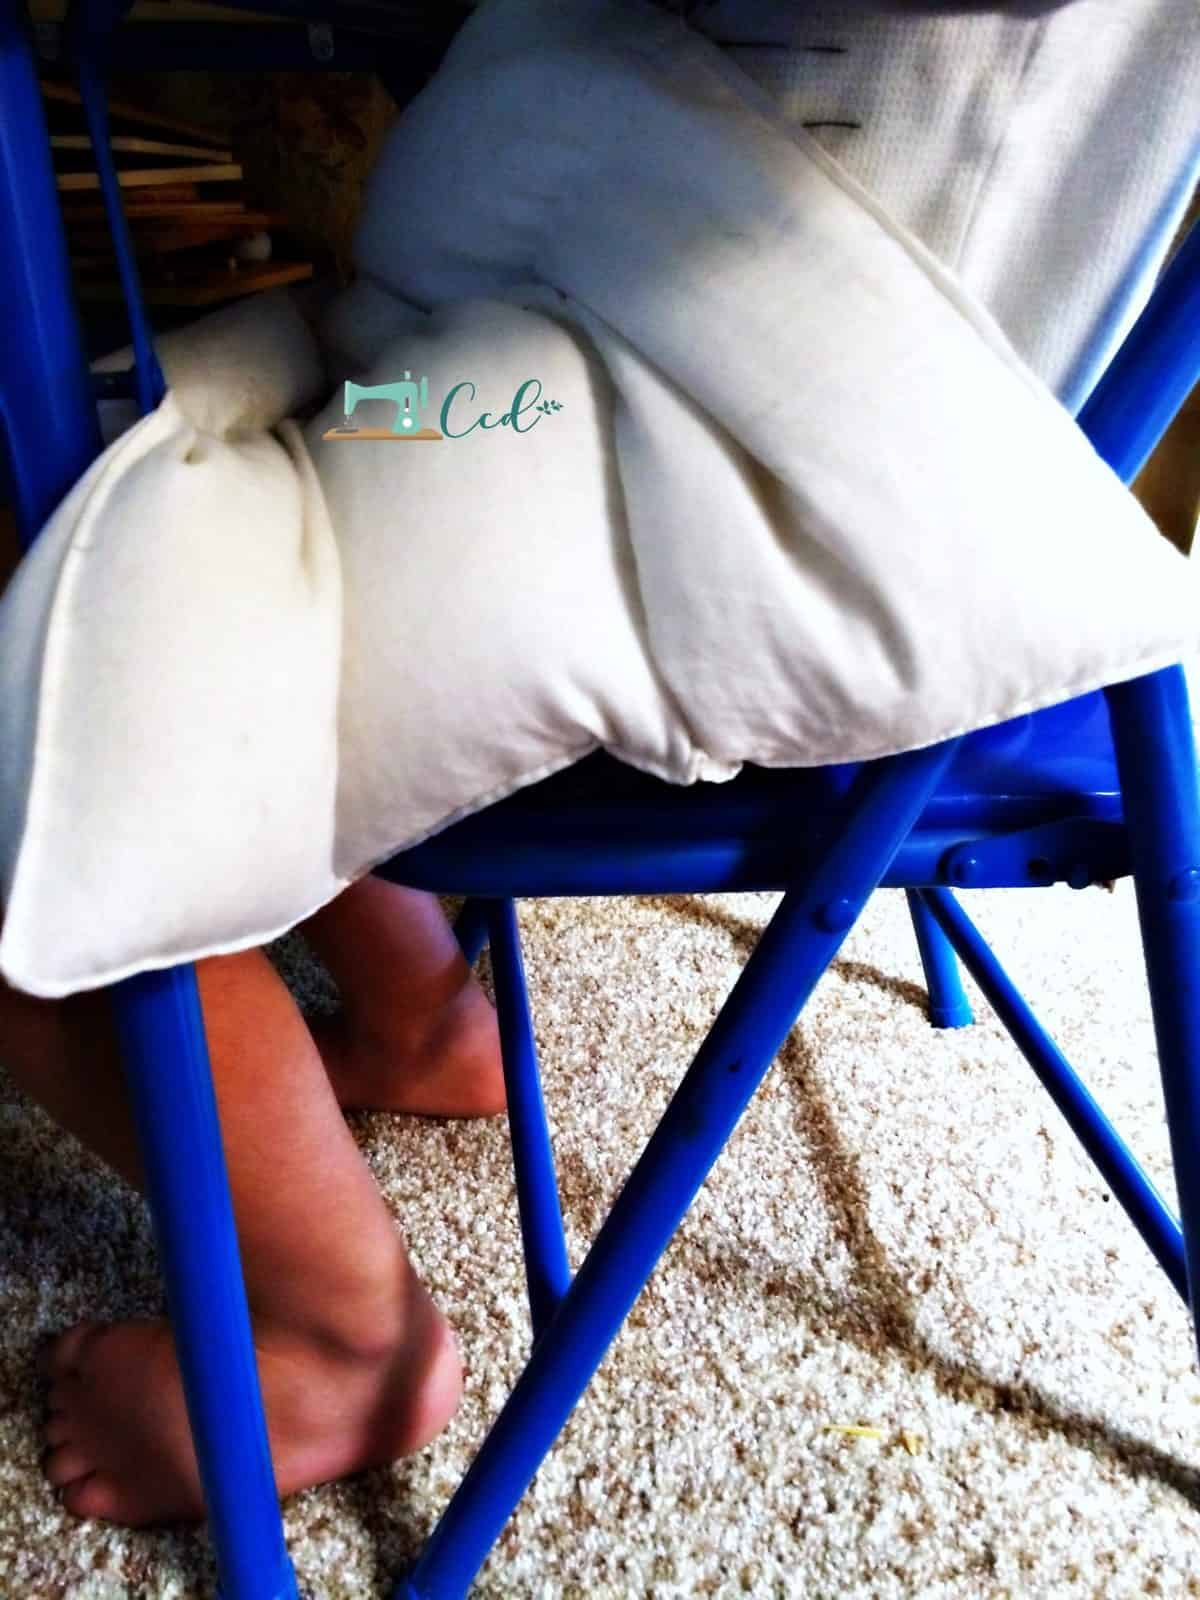 Weighted lap pad on lap in chair.